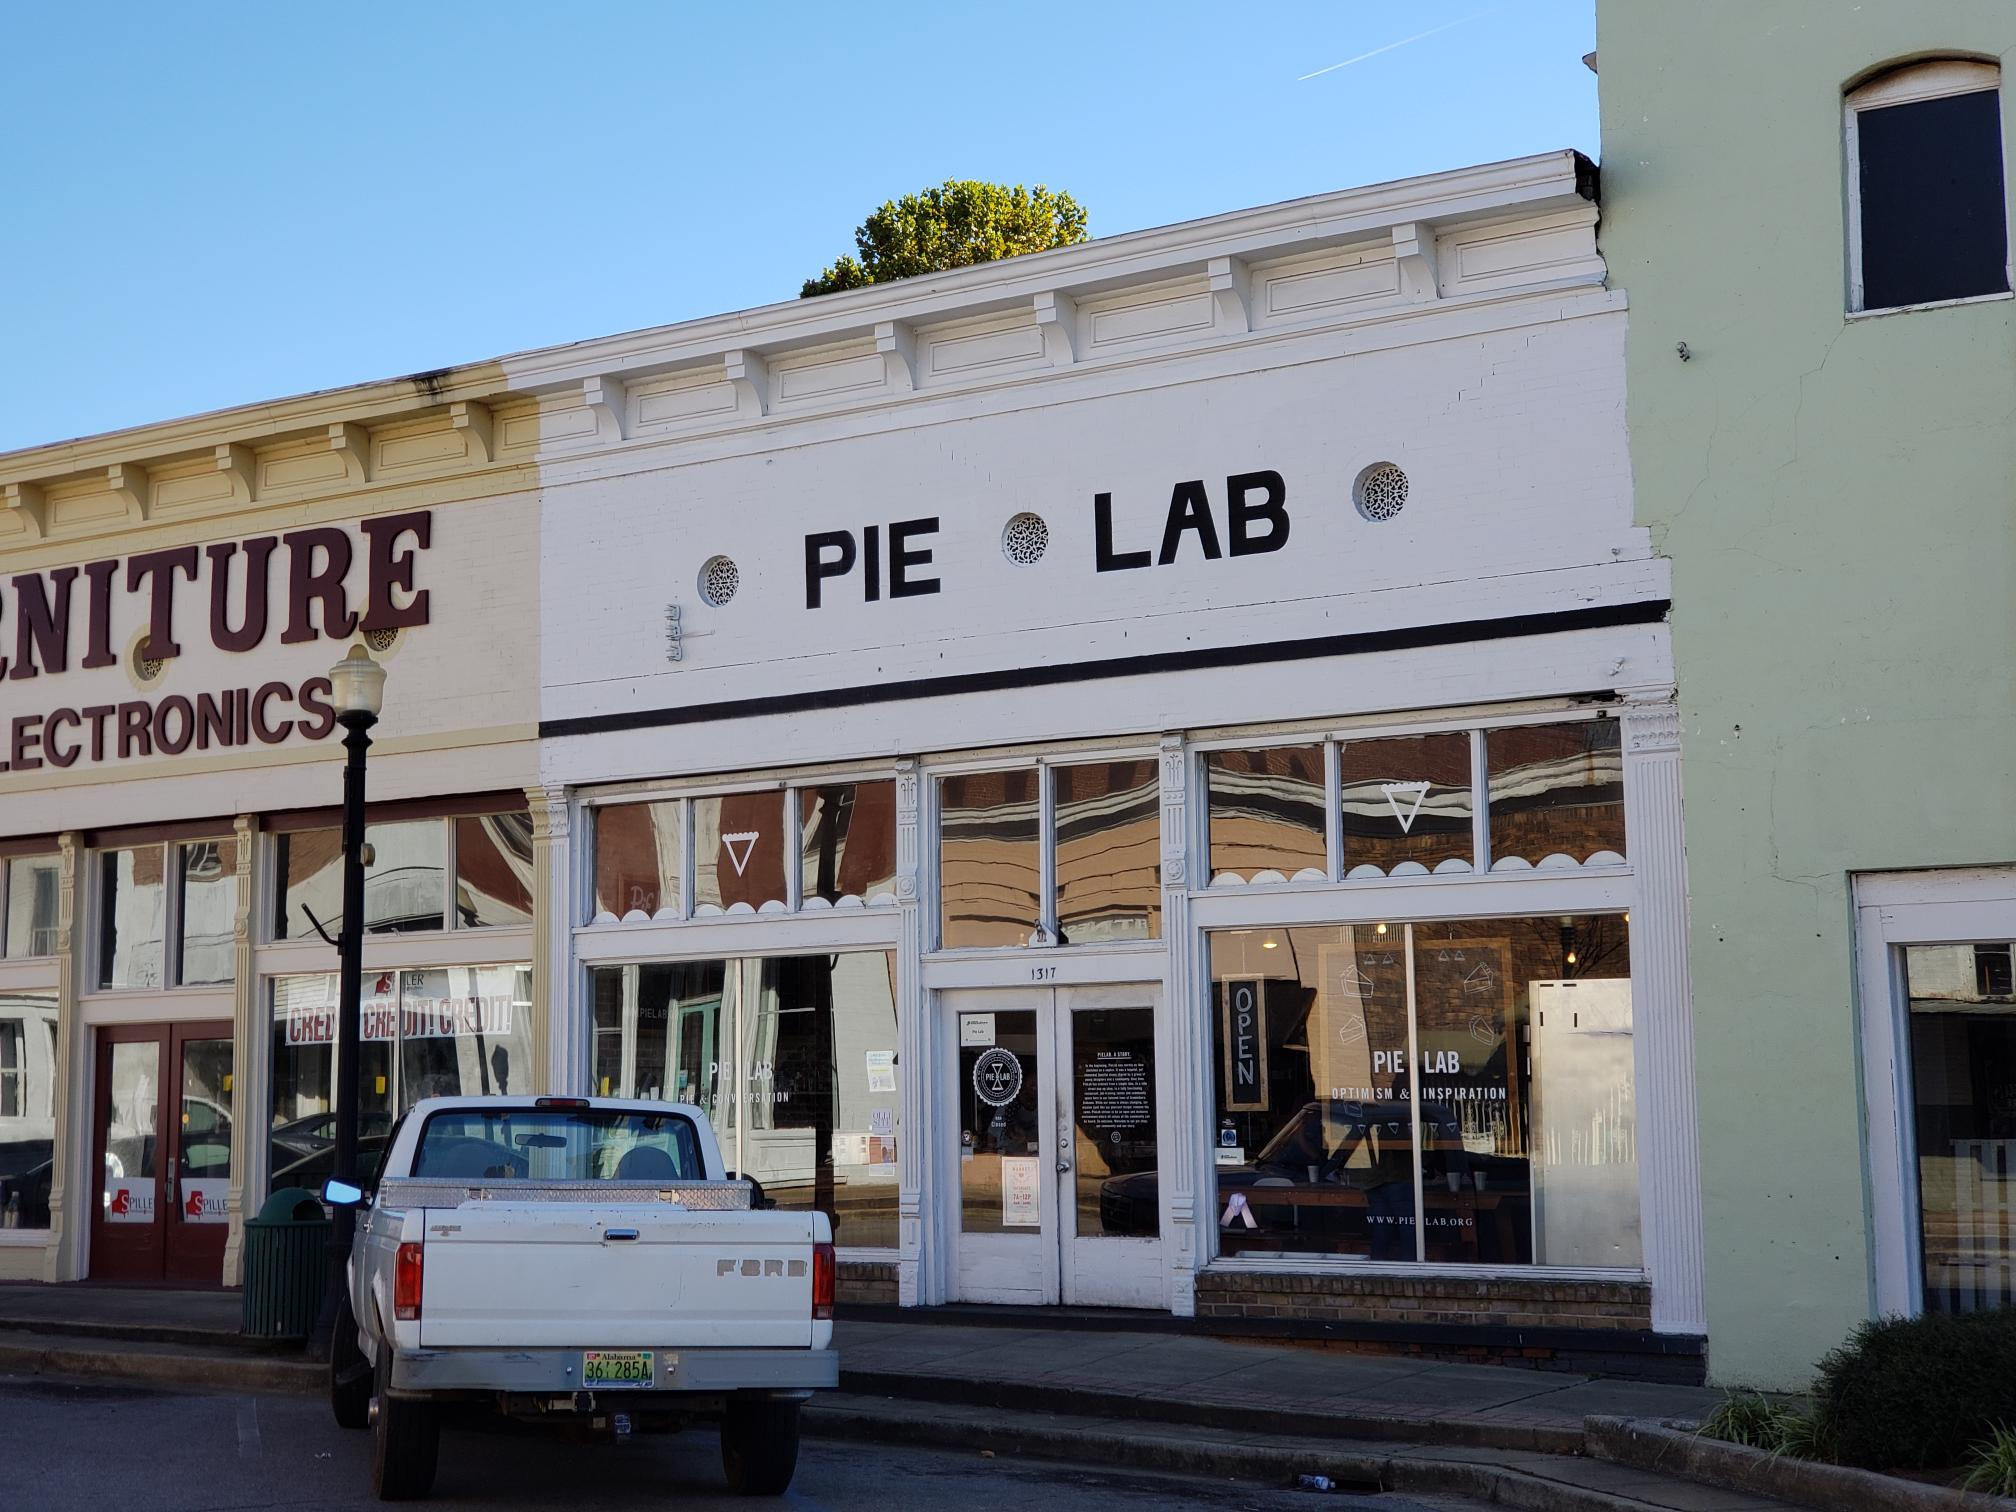 Baking pies… Building community - Greensboro's Pie Lab